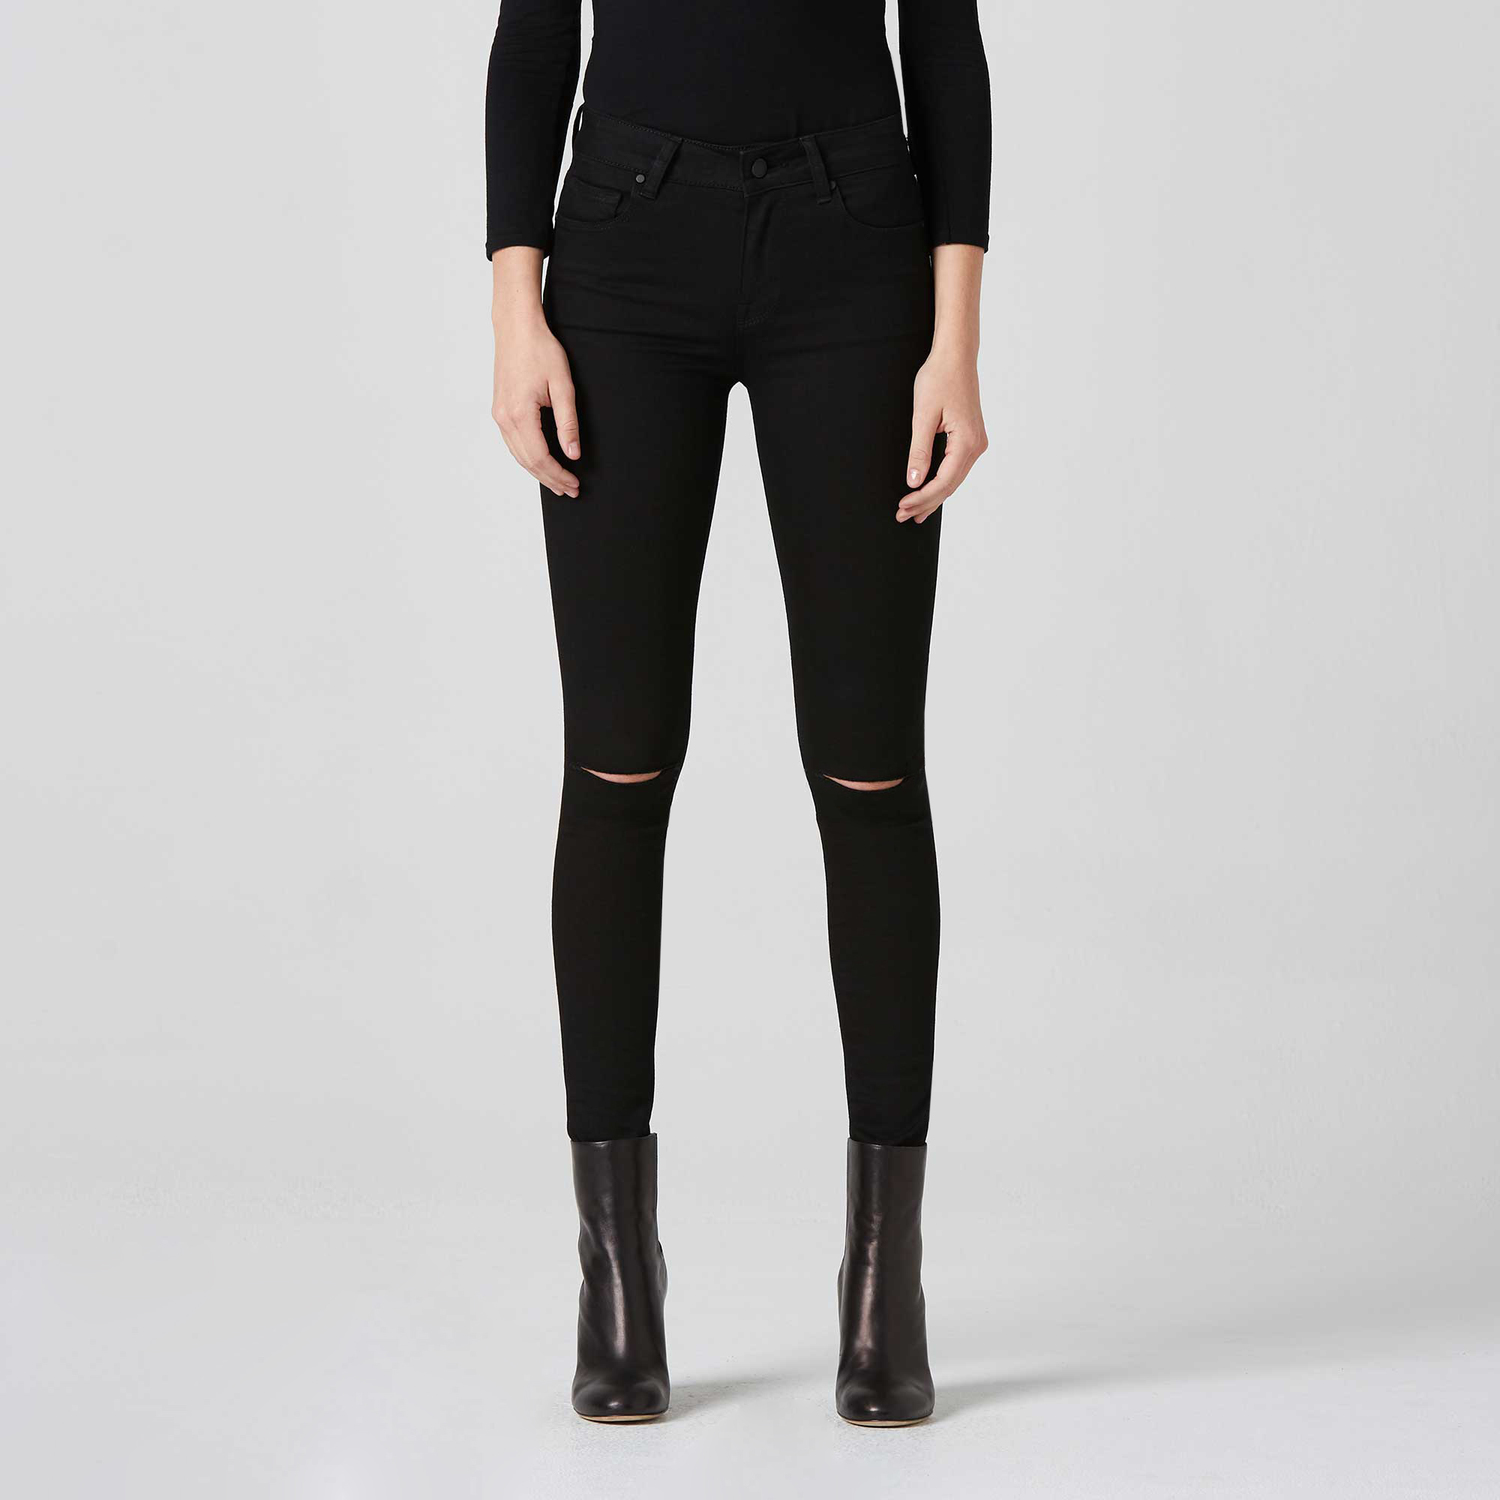 hot sale another chance provide plenty of [High Waisted Skinny] Ripped High Rise Skinny Jeans in Black